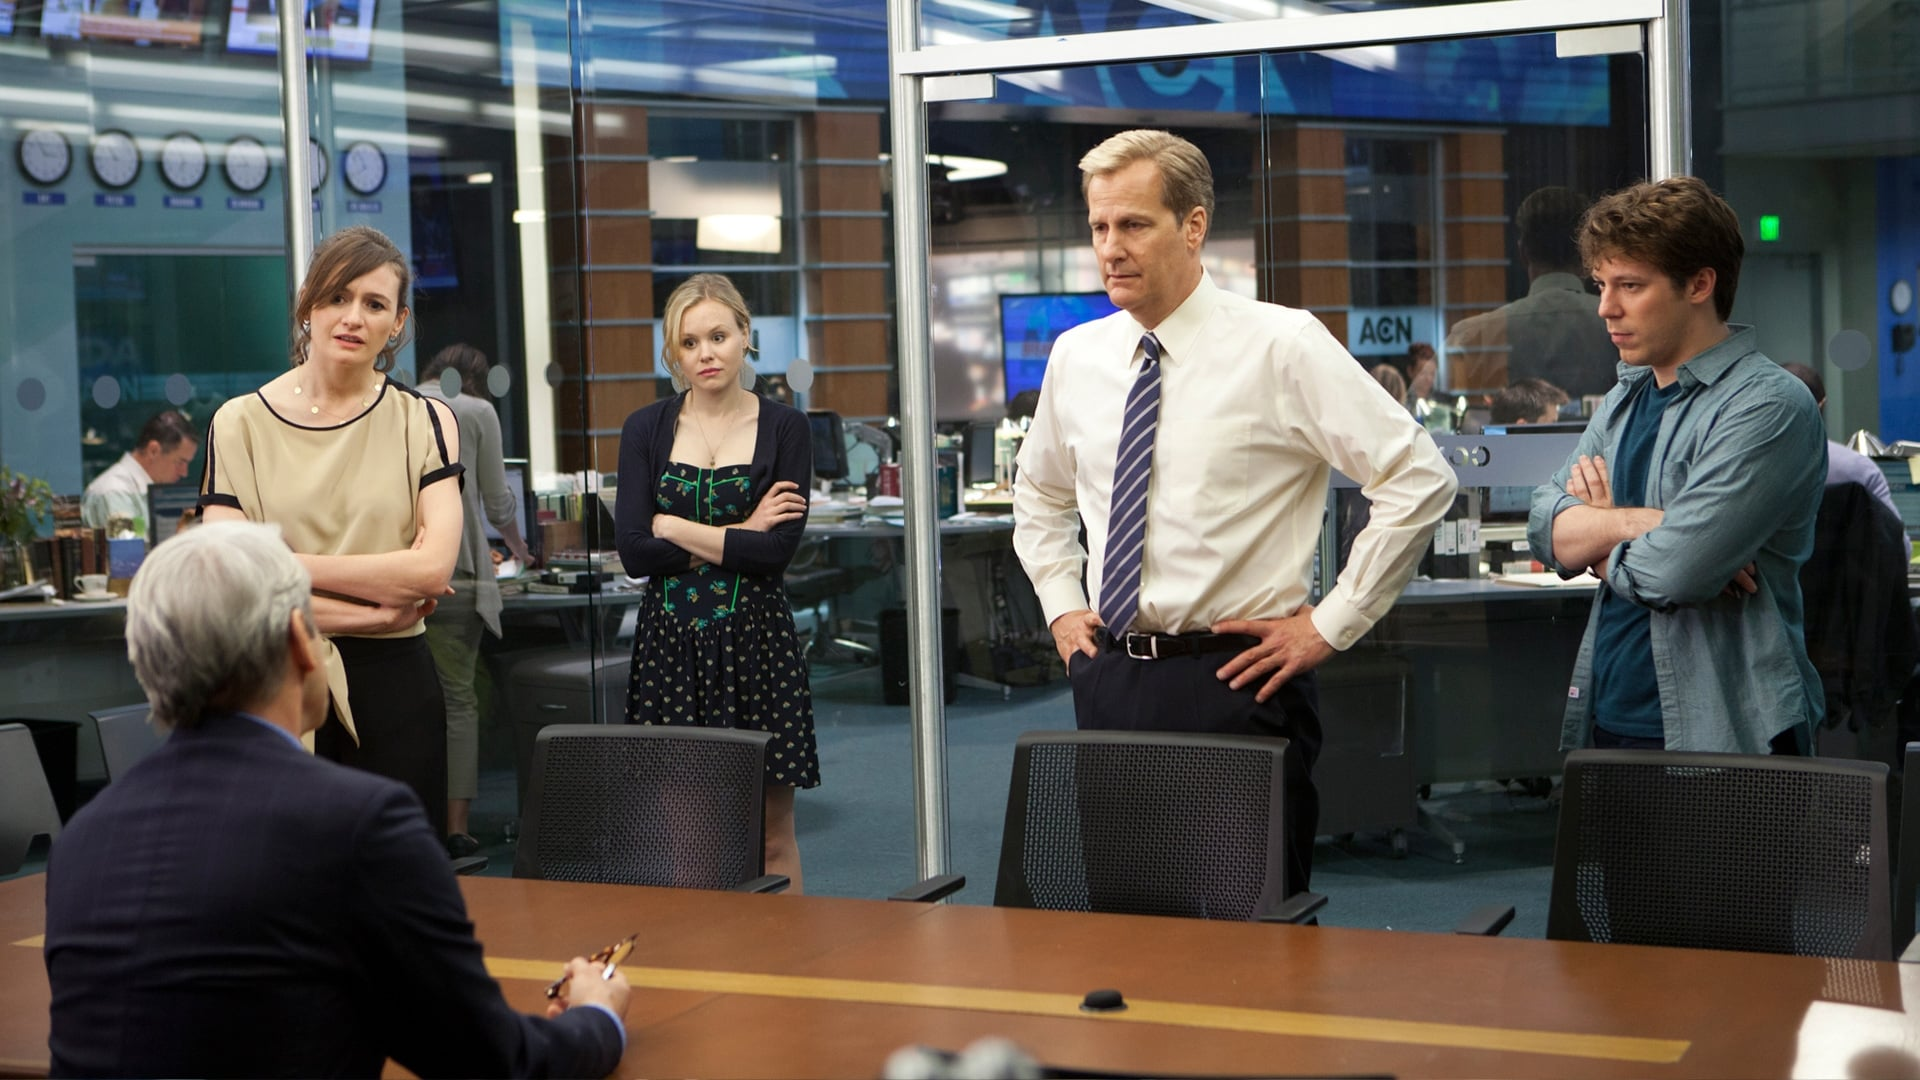 Watch The Newsroom Season 1 Episode 7 in High Quality